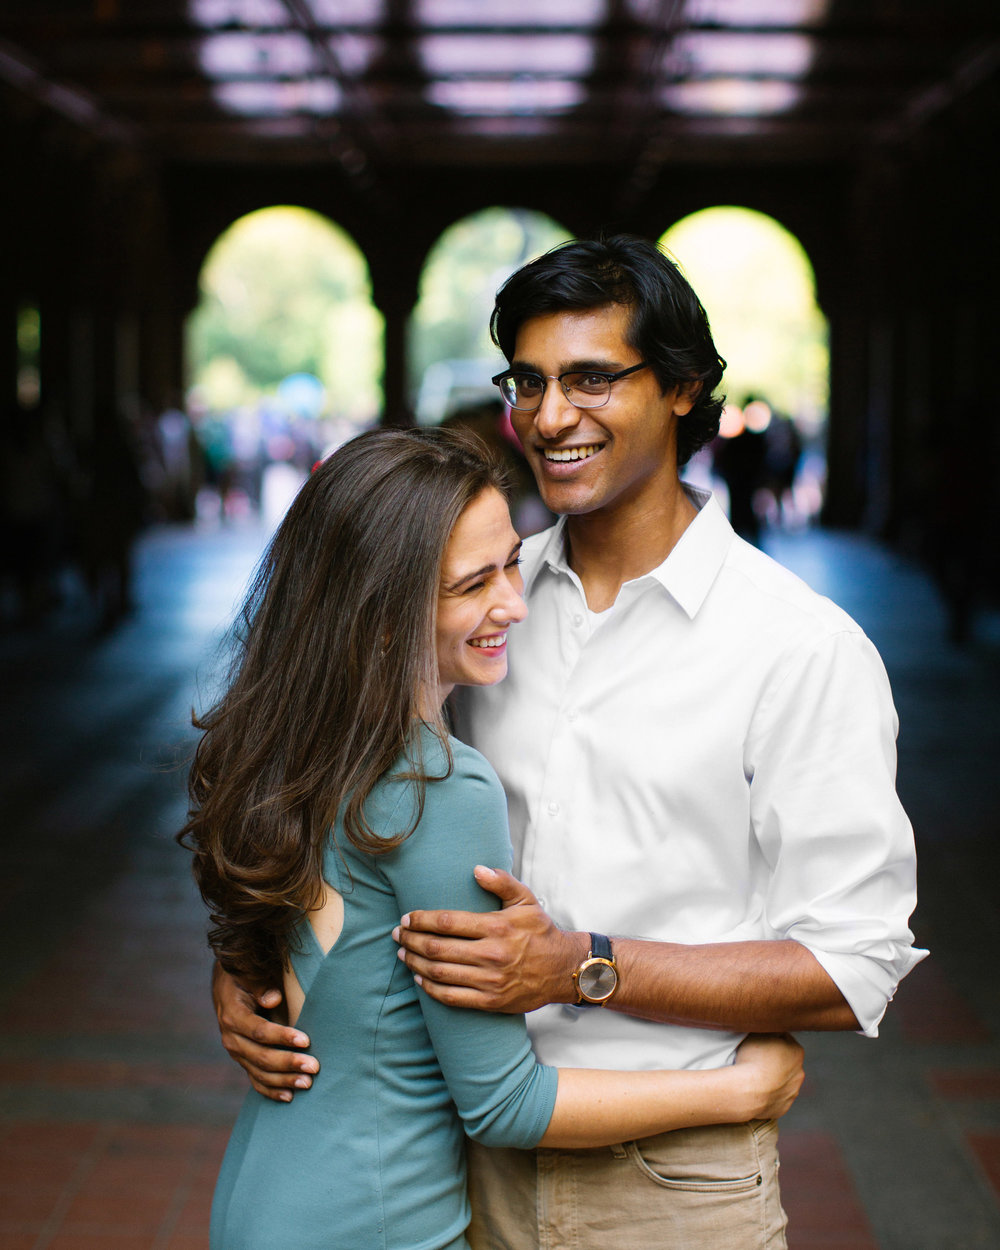 central_park_engagement_session_photos_04.jpg